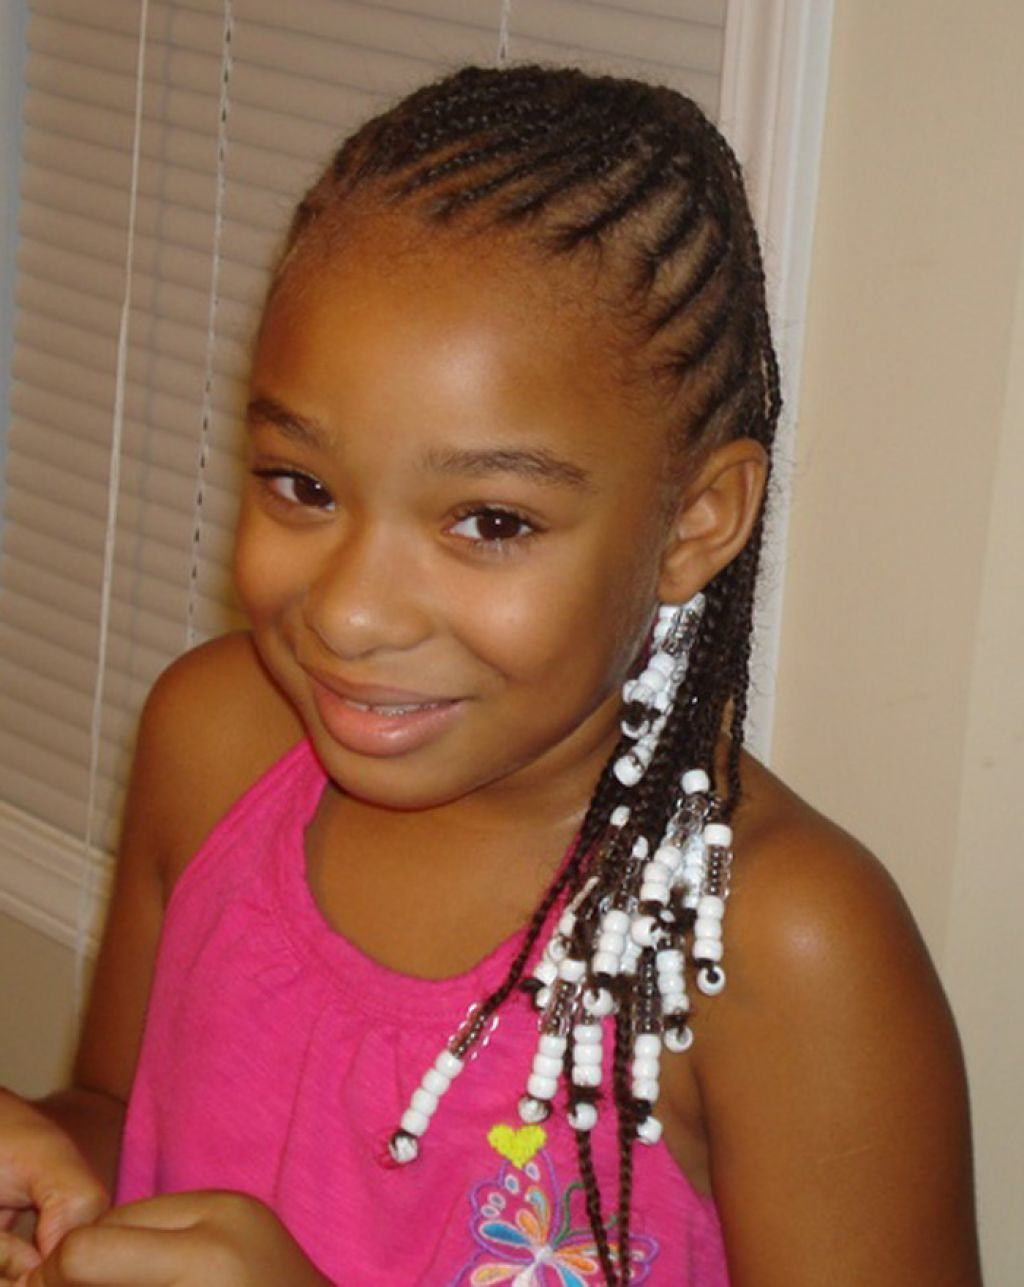 Best ideas about Children Hairstyles Braids . Save or Pin 45 Fun & Funky Braided Hairstyles for Kids – HairstyleCamp Now.